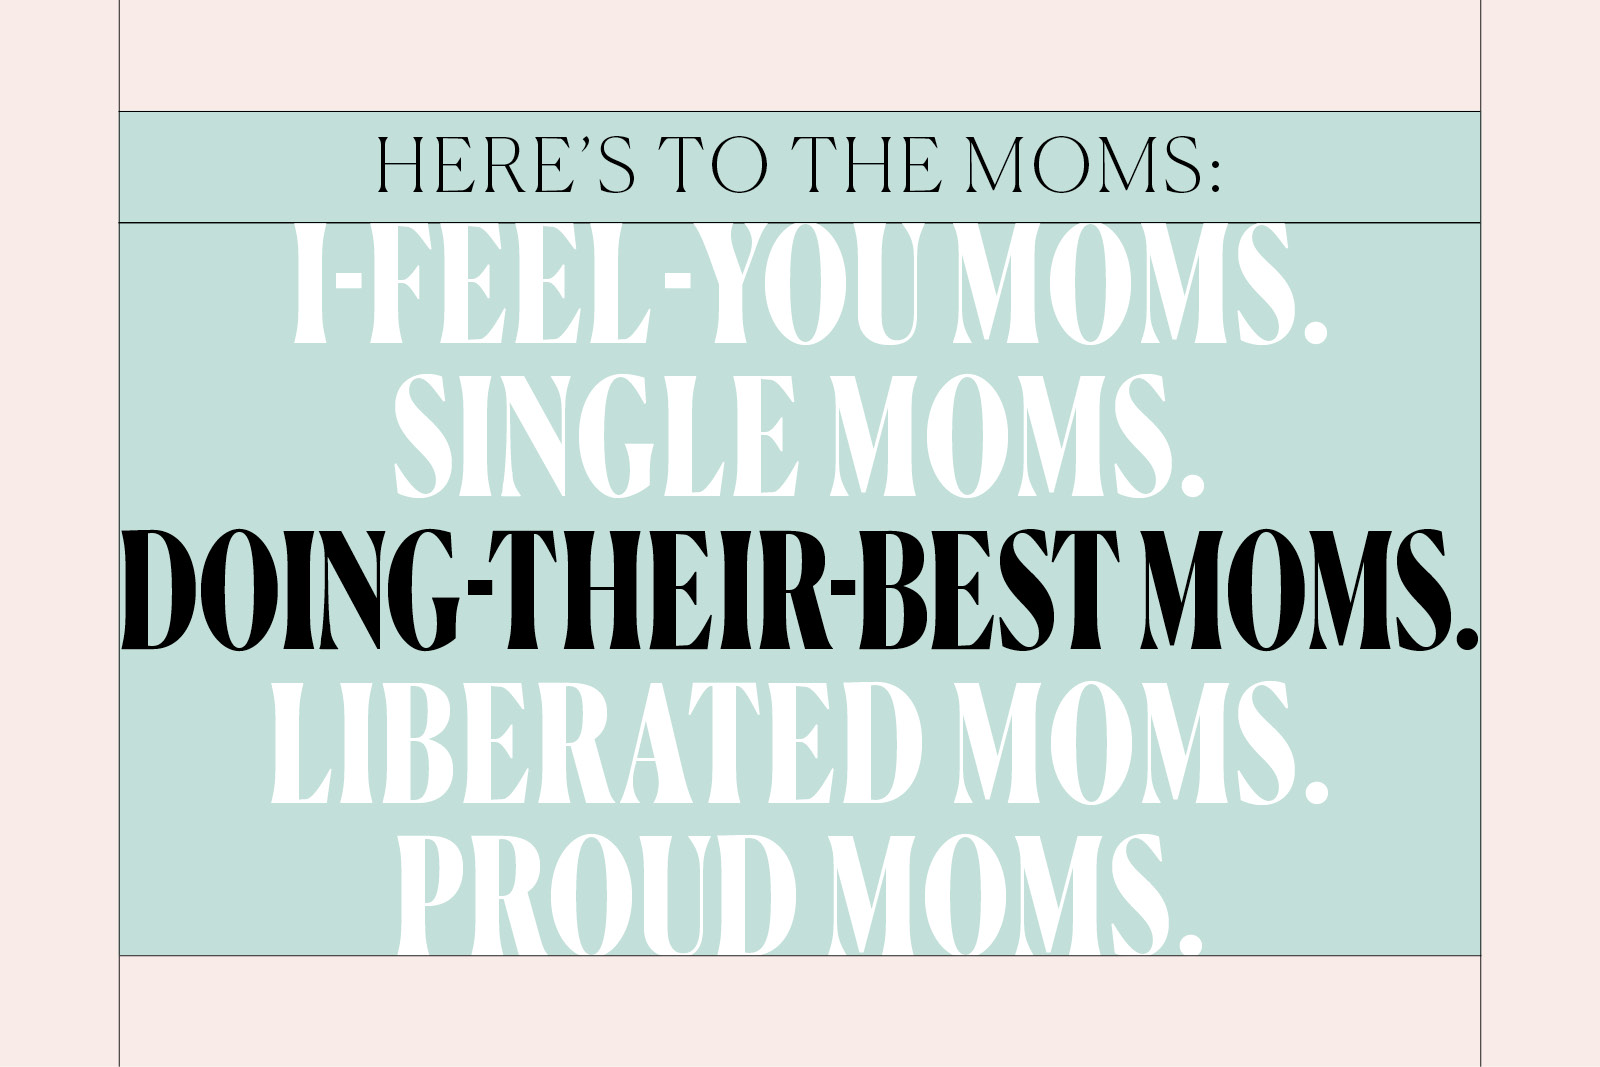 Mother's Day Essay: What Mom Got Right—Even When She Messed Up